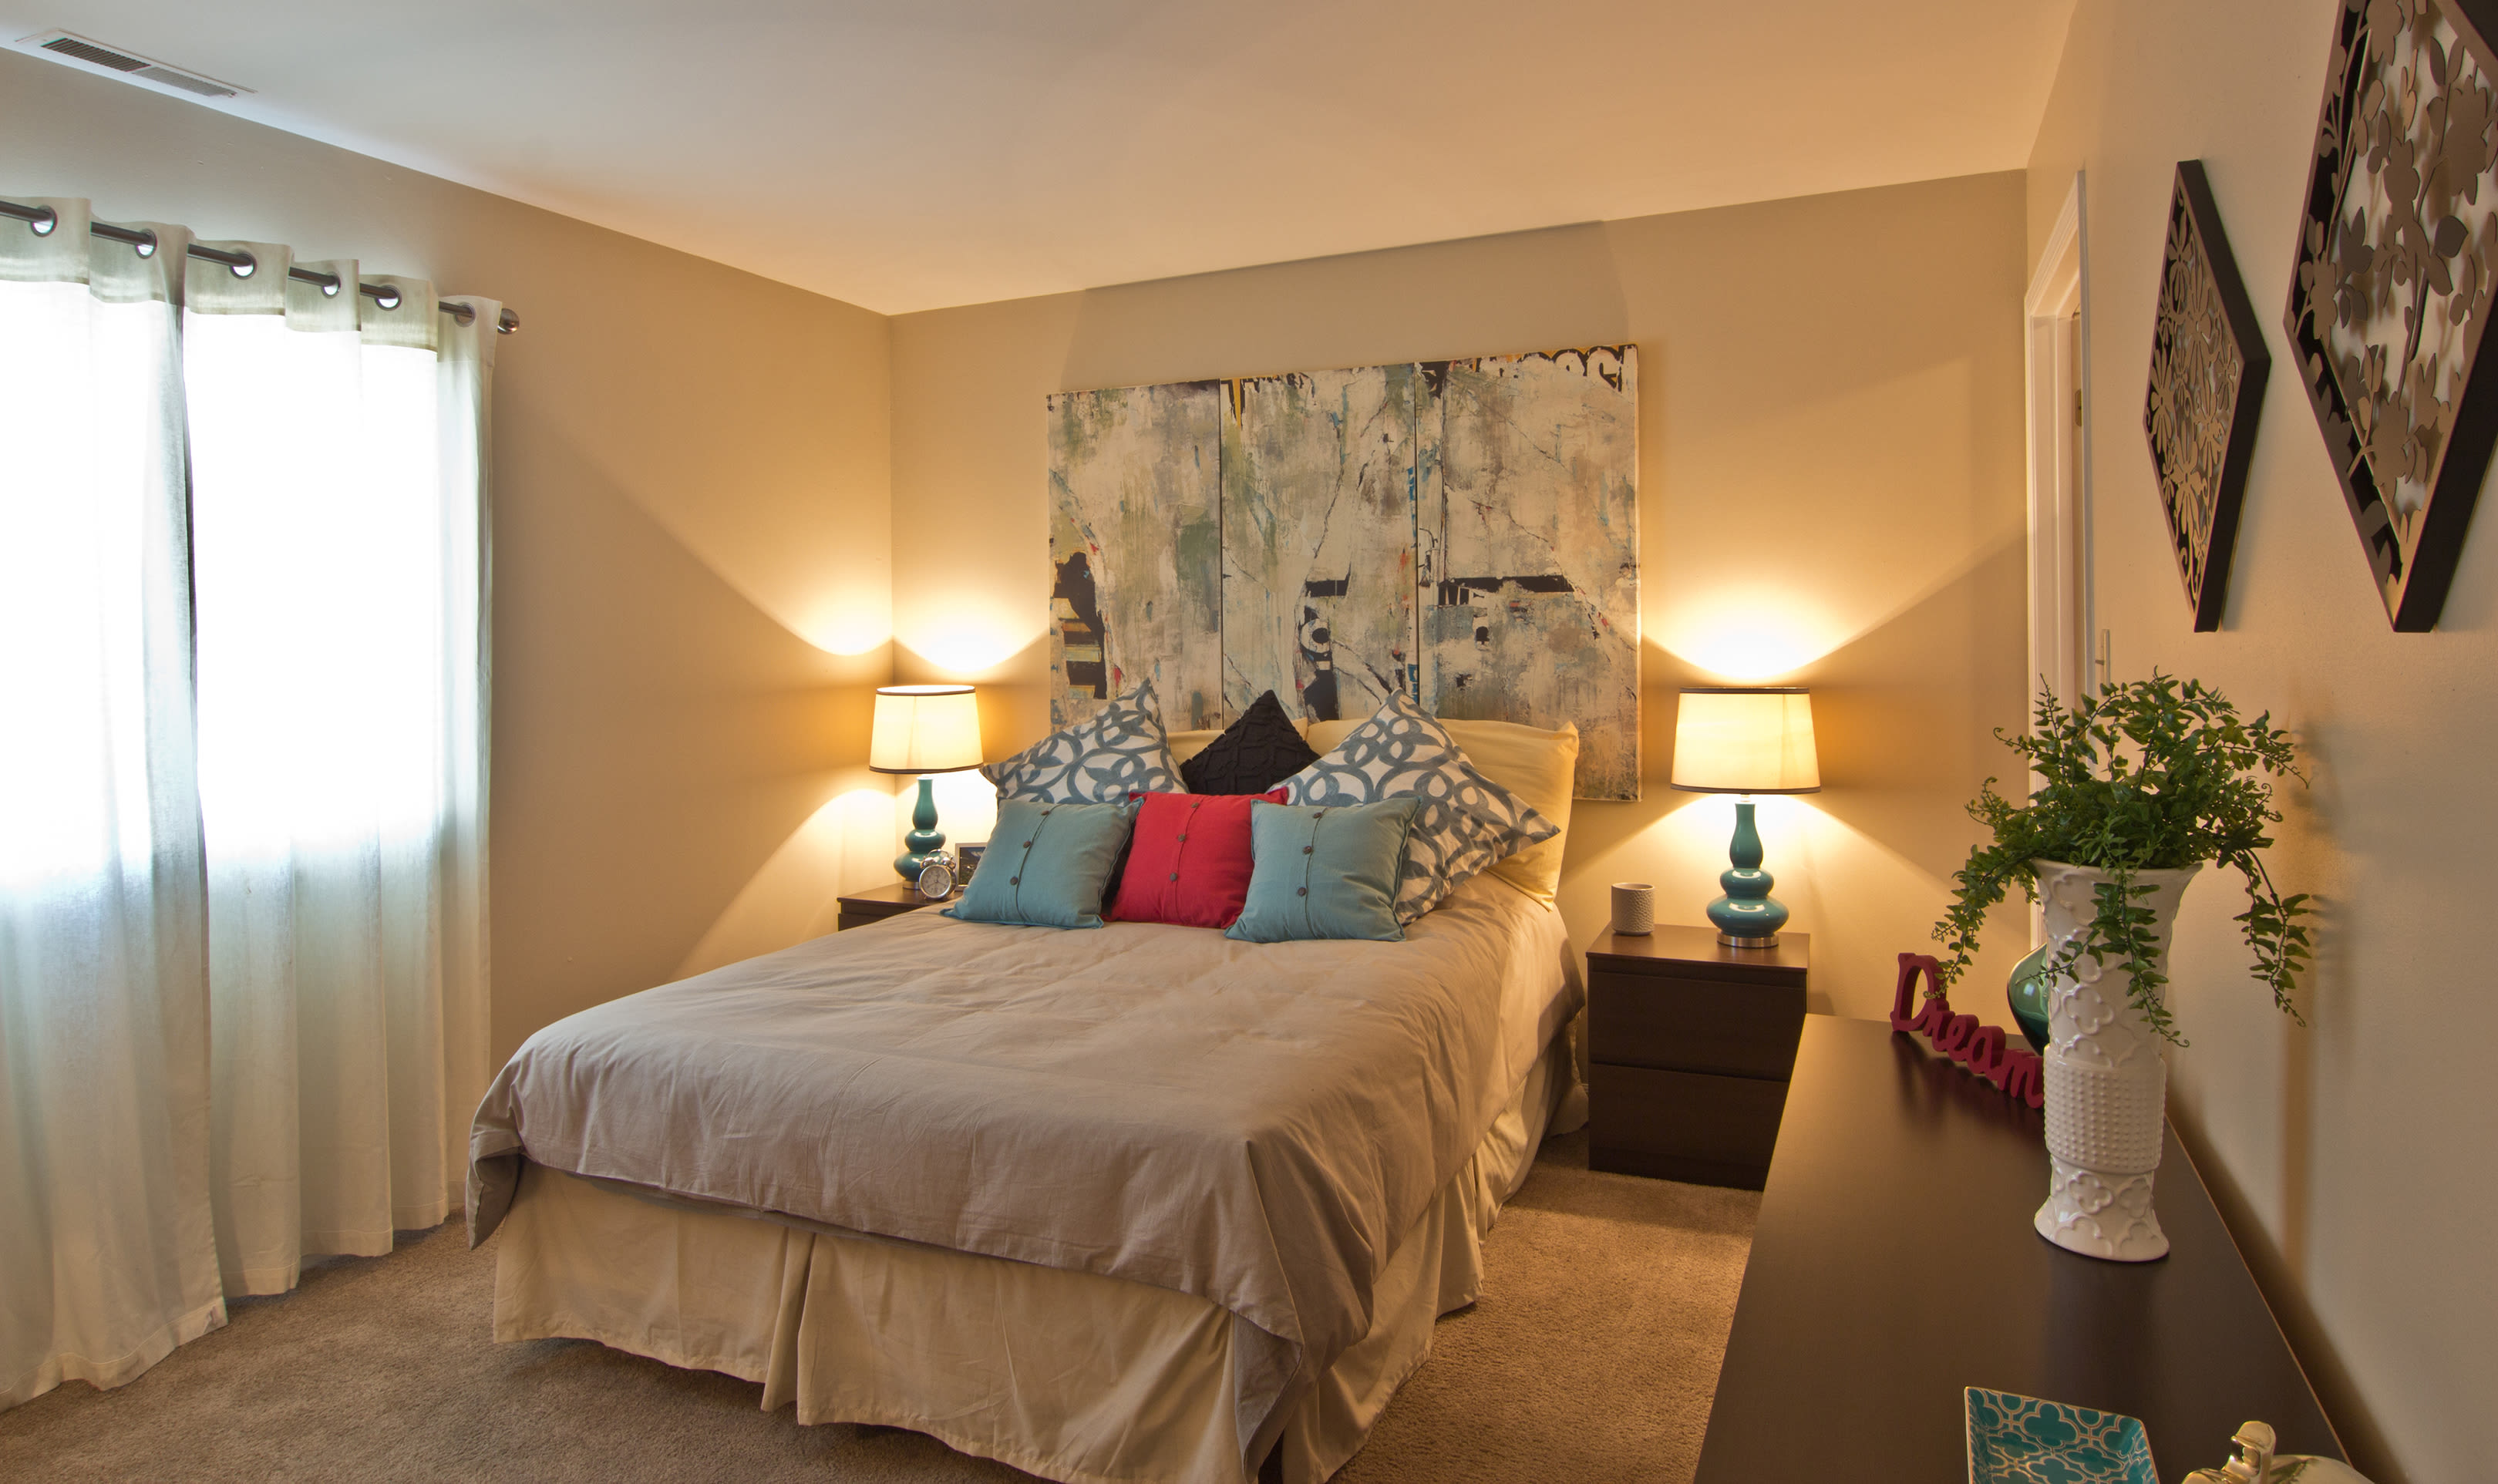 The Lakes at 8201 offers a cozy bedroom in Merrillville, Indiana